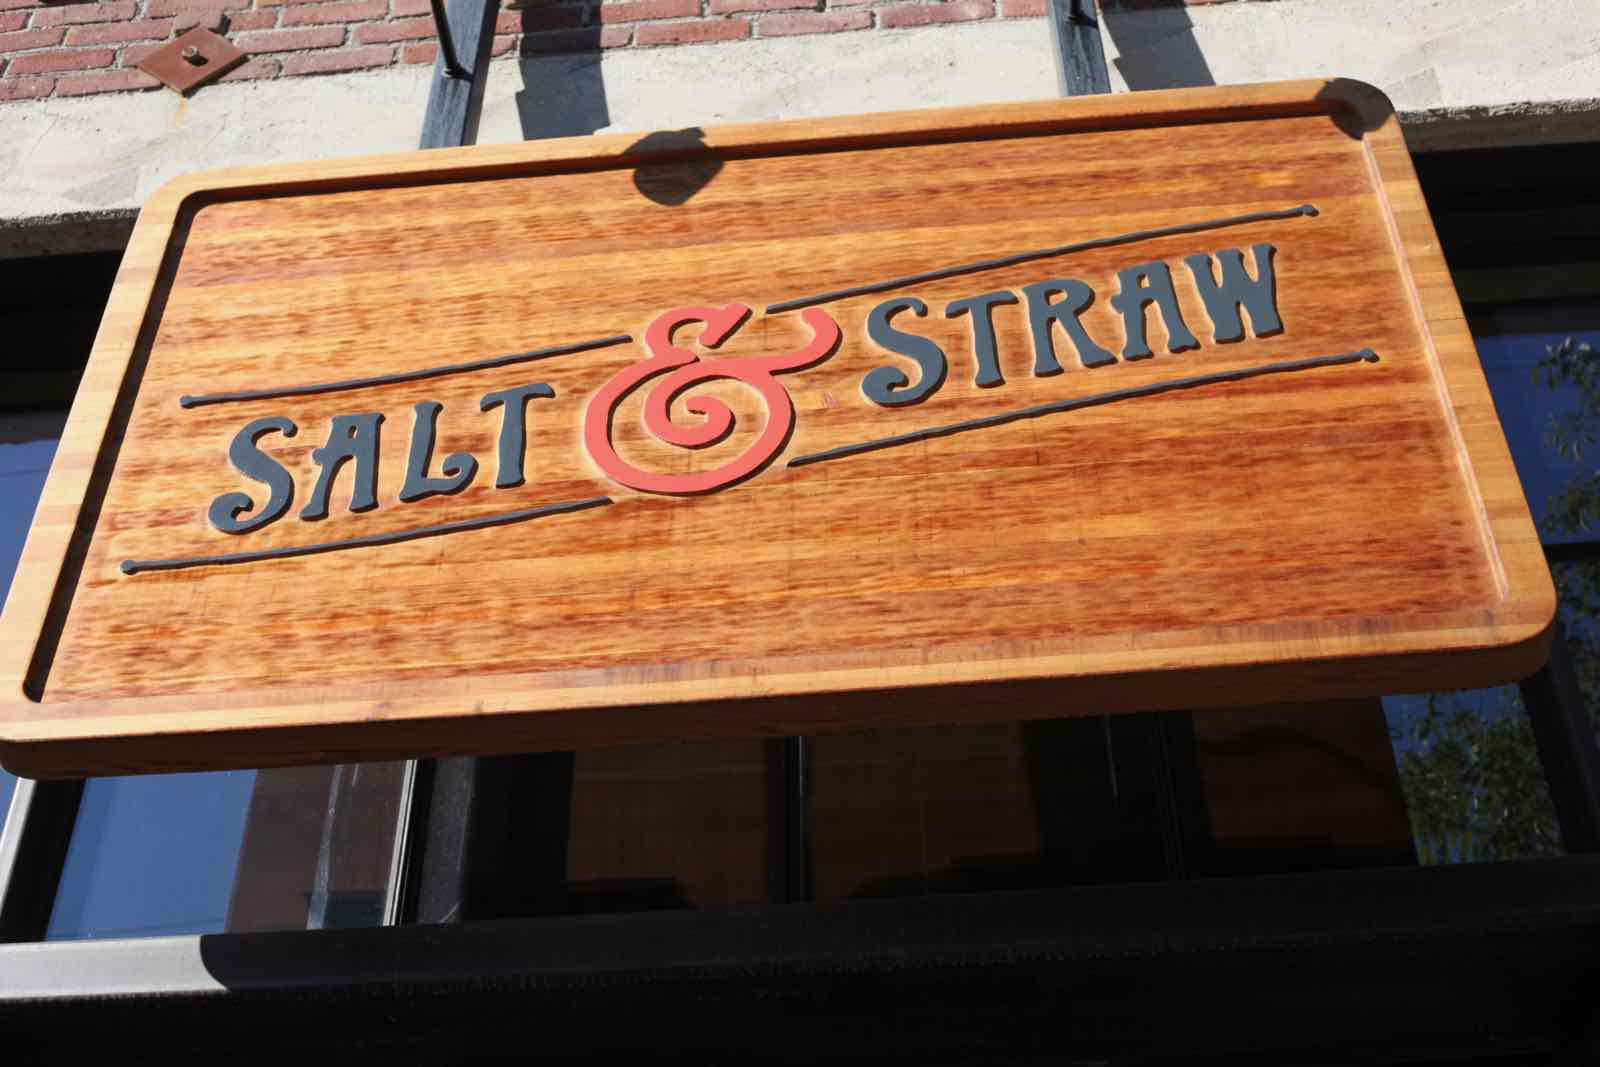 salt-and-straw-downtown-los-angeles.jpg